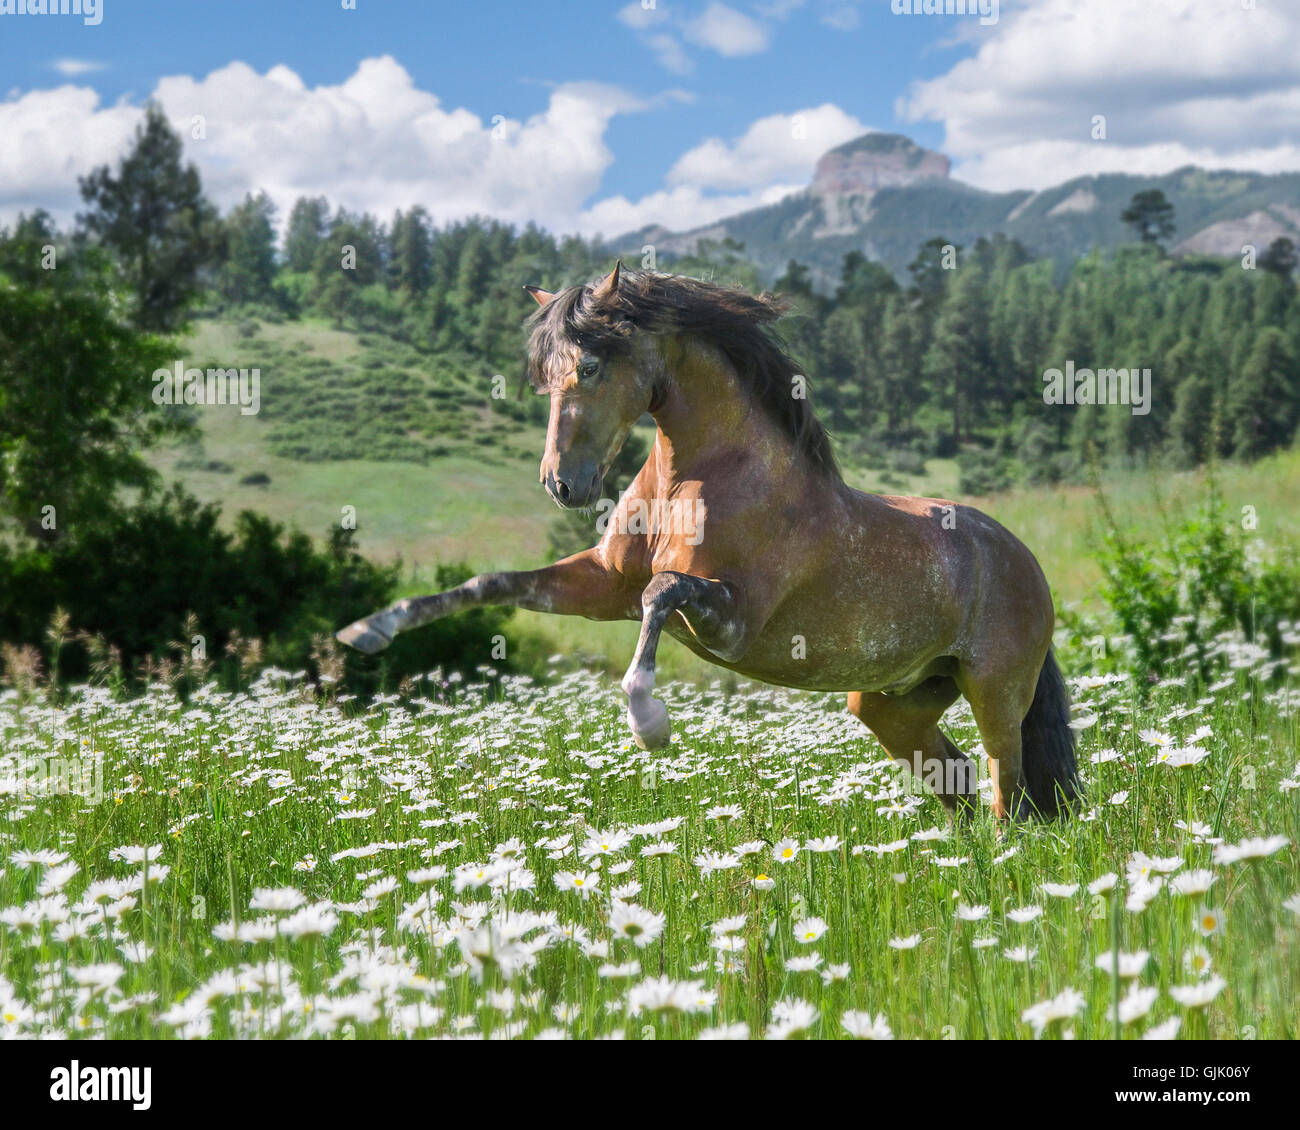 Andalusian horse stallion rears up in wildflower meadow. - Stock Image